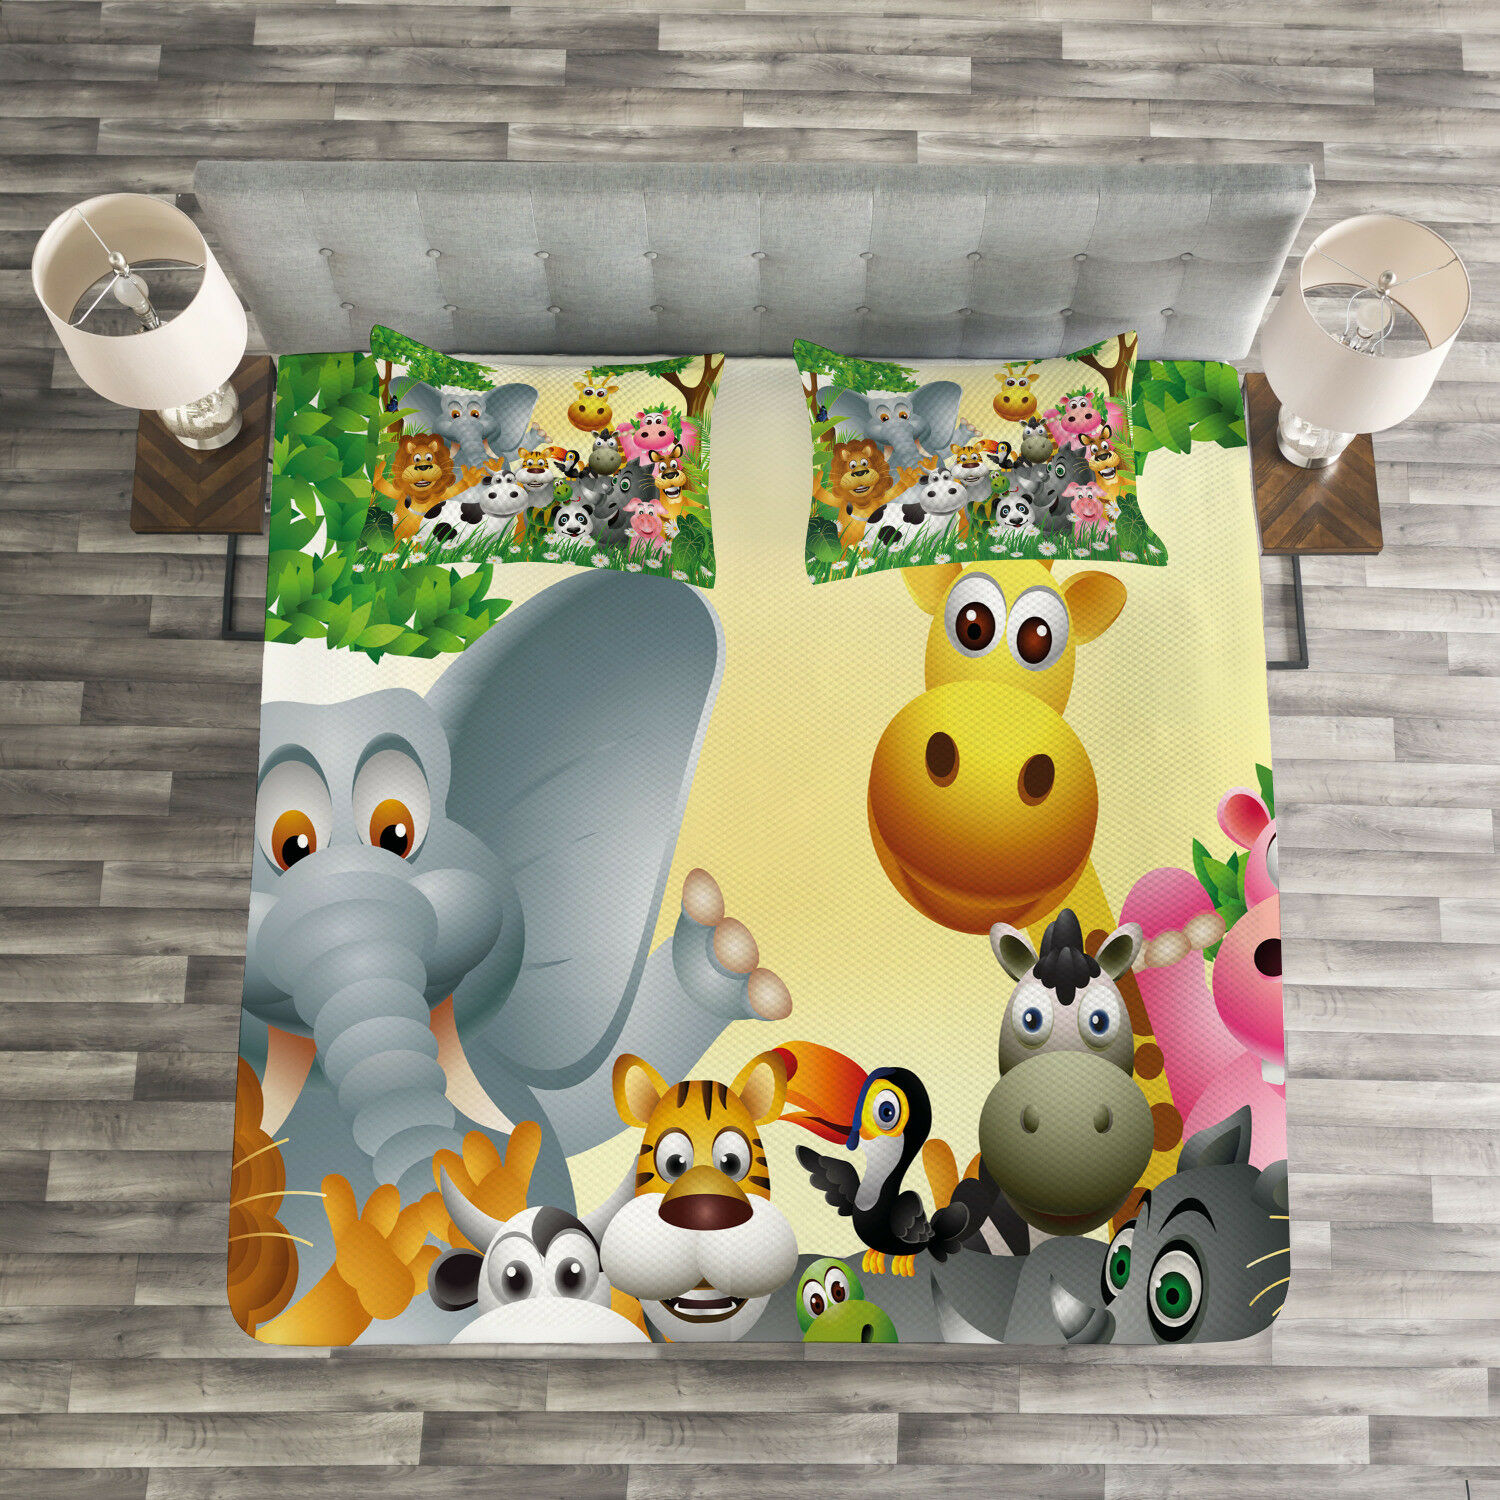 Kids Quilted Bedspread & Pillow Shams Set, Cute Animals Jungle Print